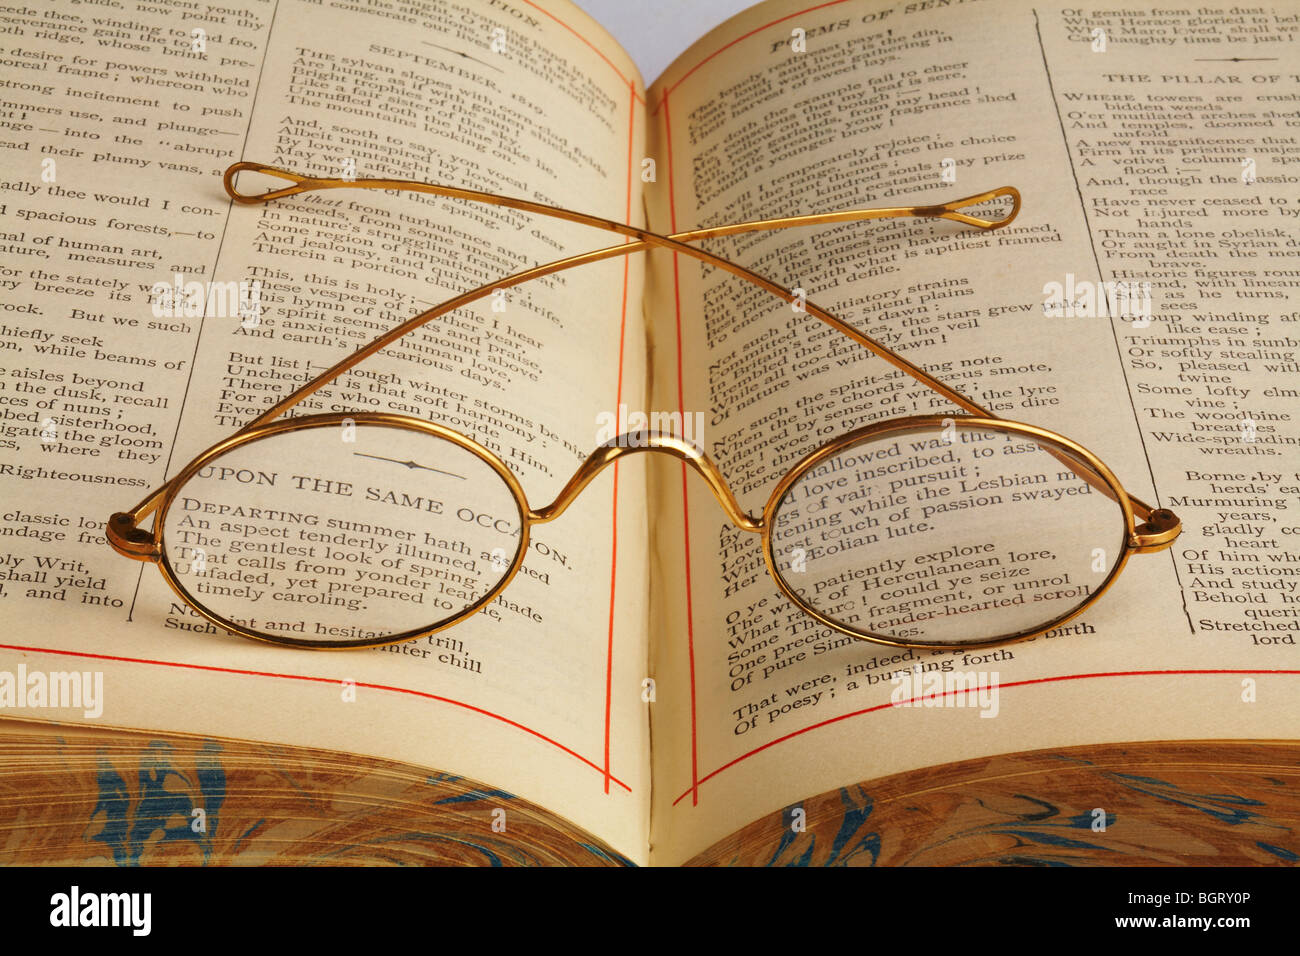 antique gold rimmed spectacles laying across gutter of  open antique book of poems - Stock Image